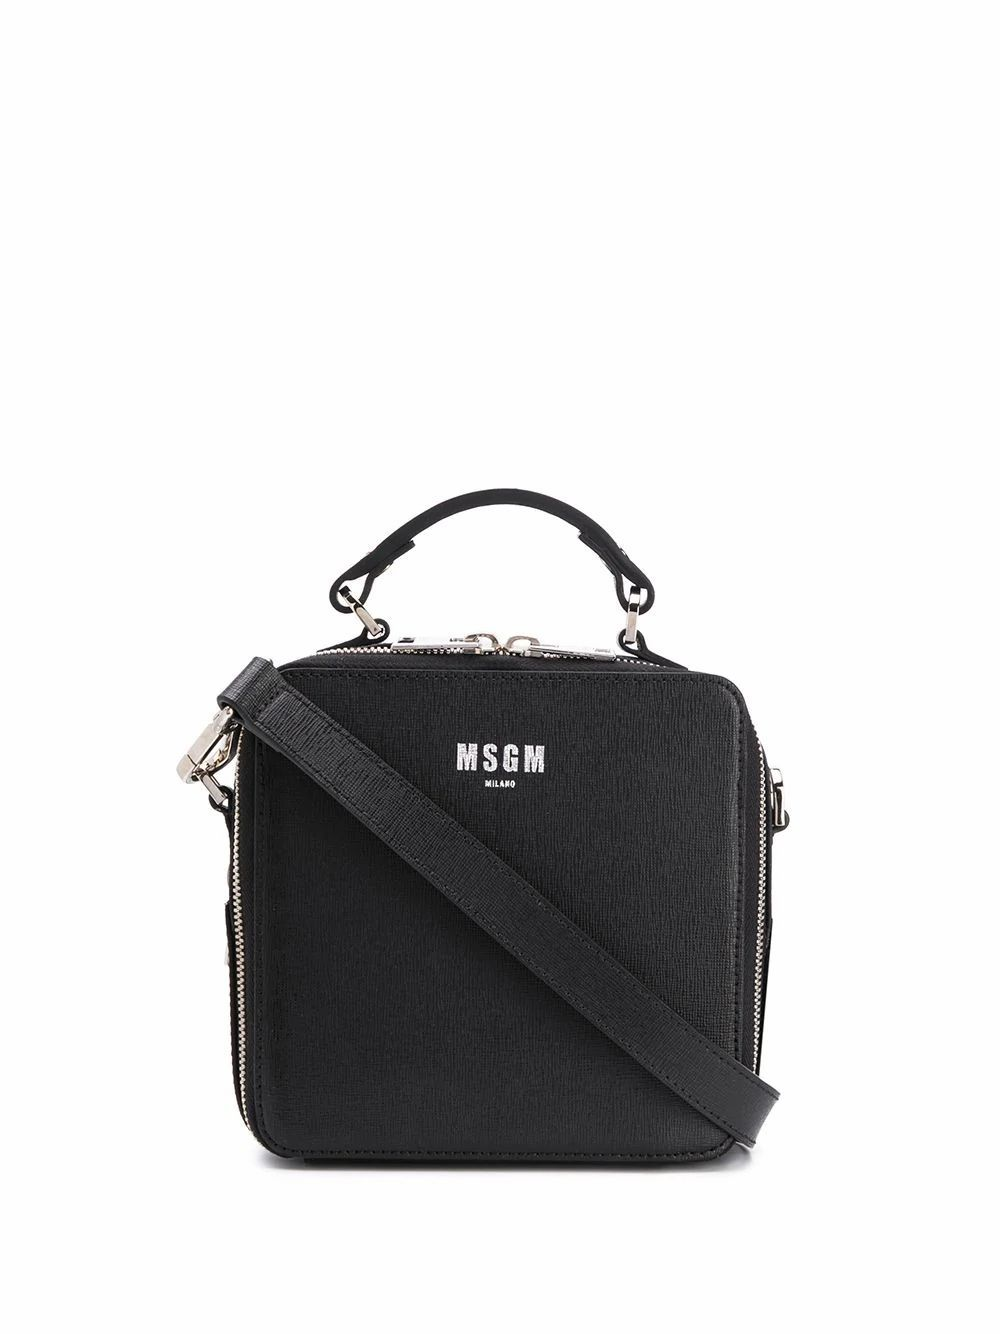 MSGM WOMEN'S 2841MDZ55044099 BLACK LEATHER HANDBAG